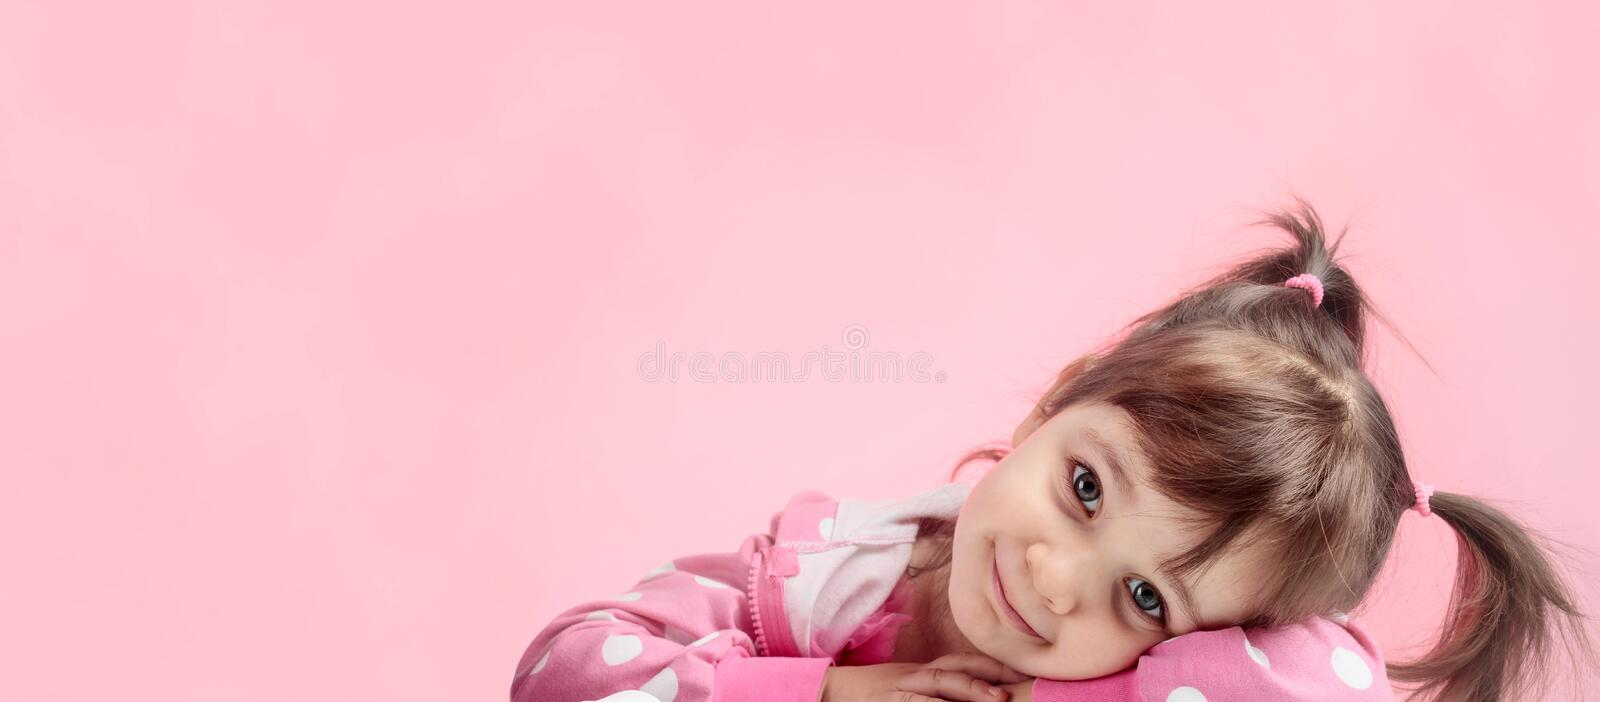 Portrait of a cute little girl with pigtails on pink background royalty free stock images